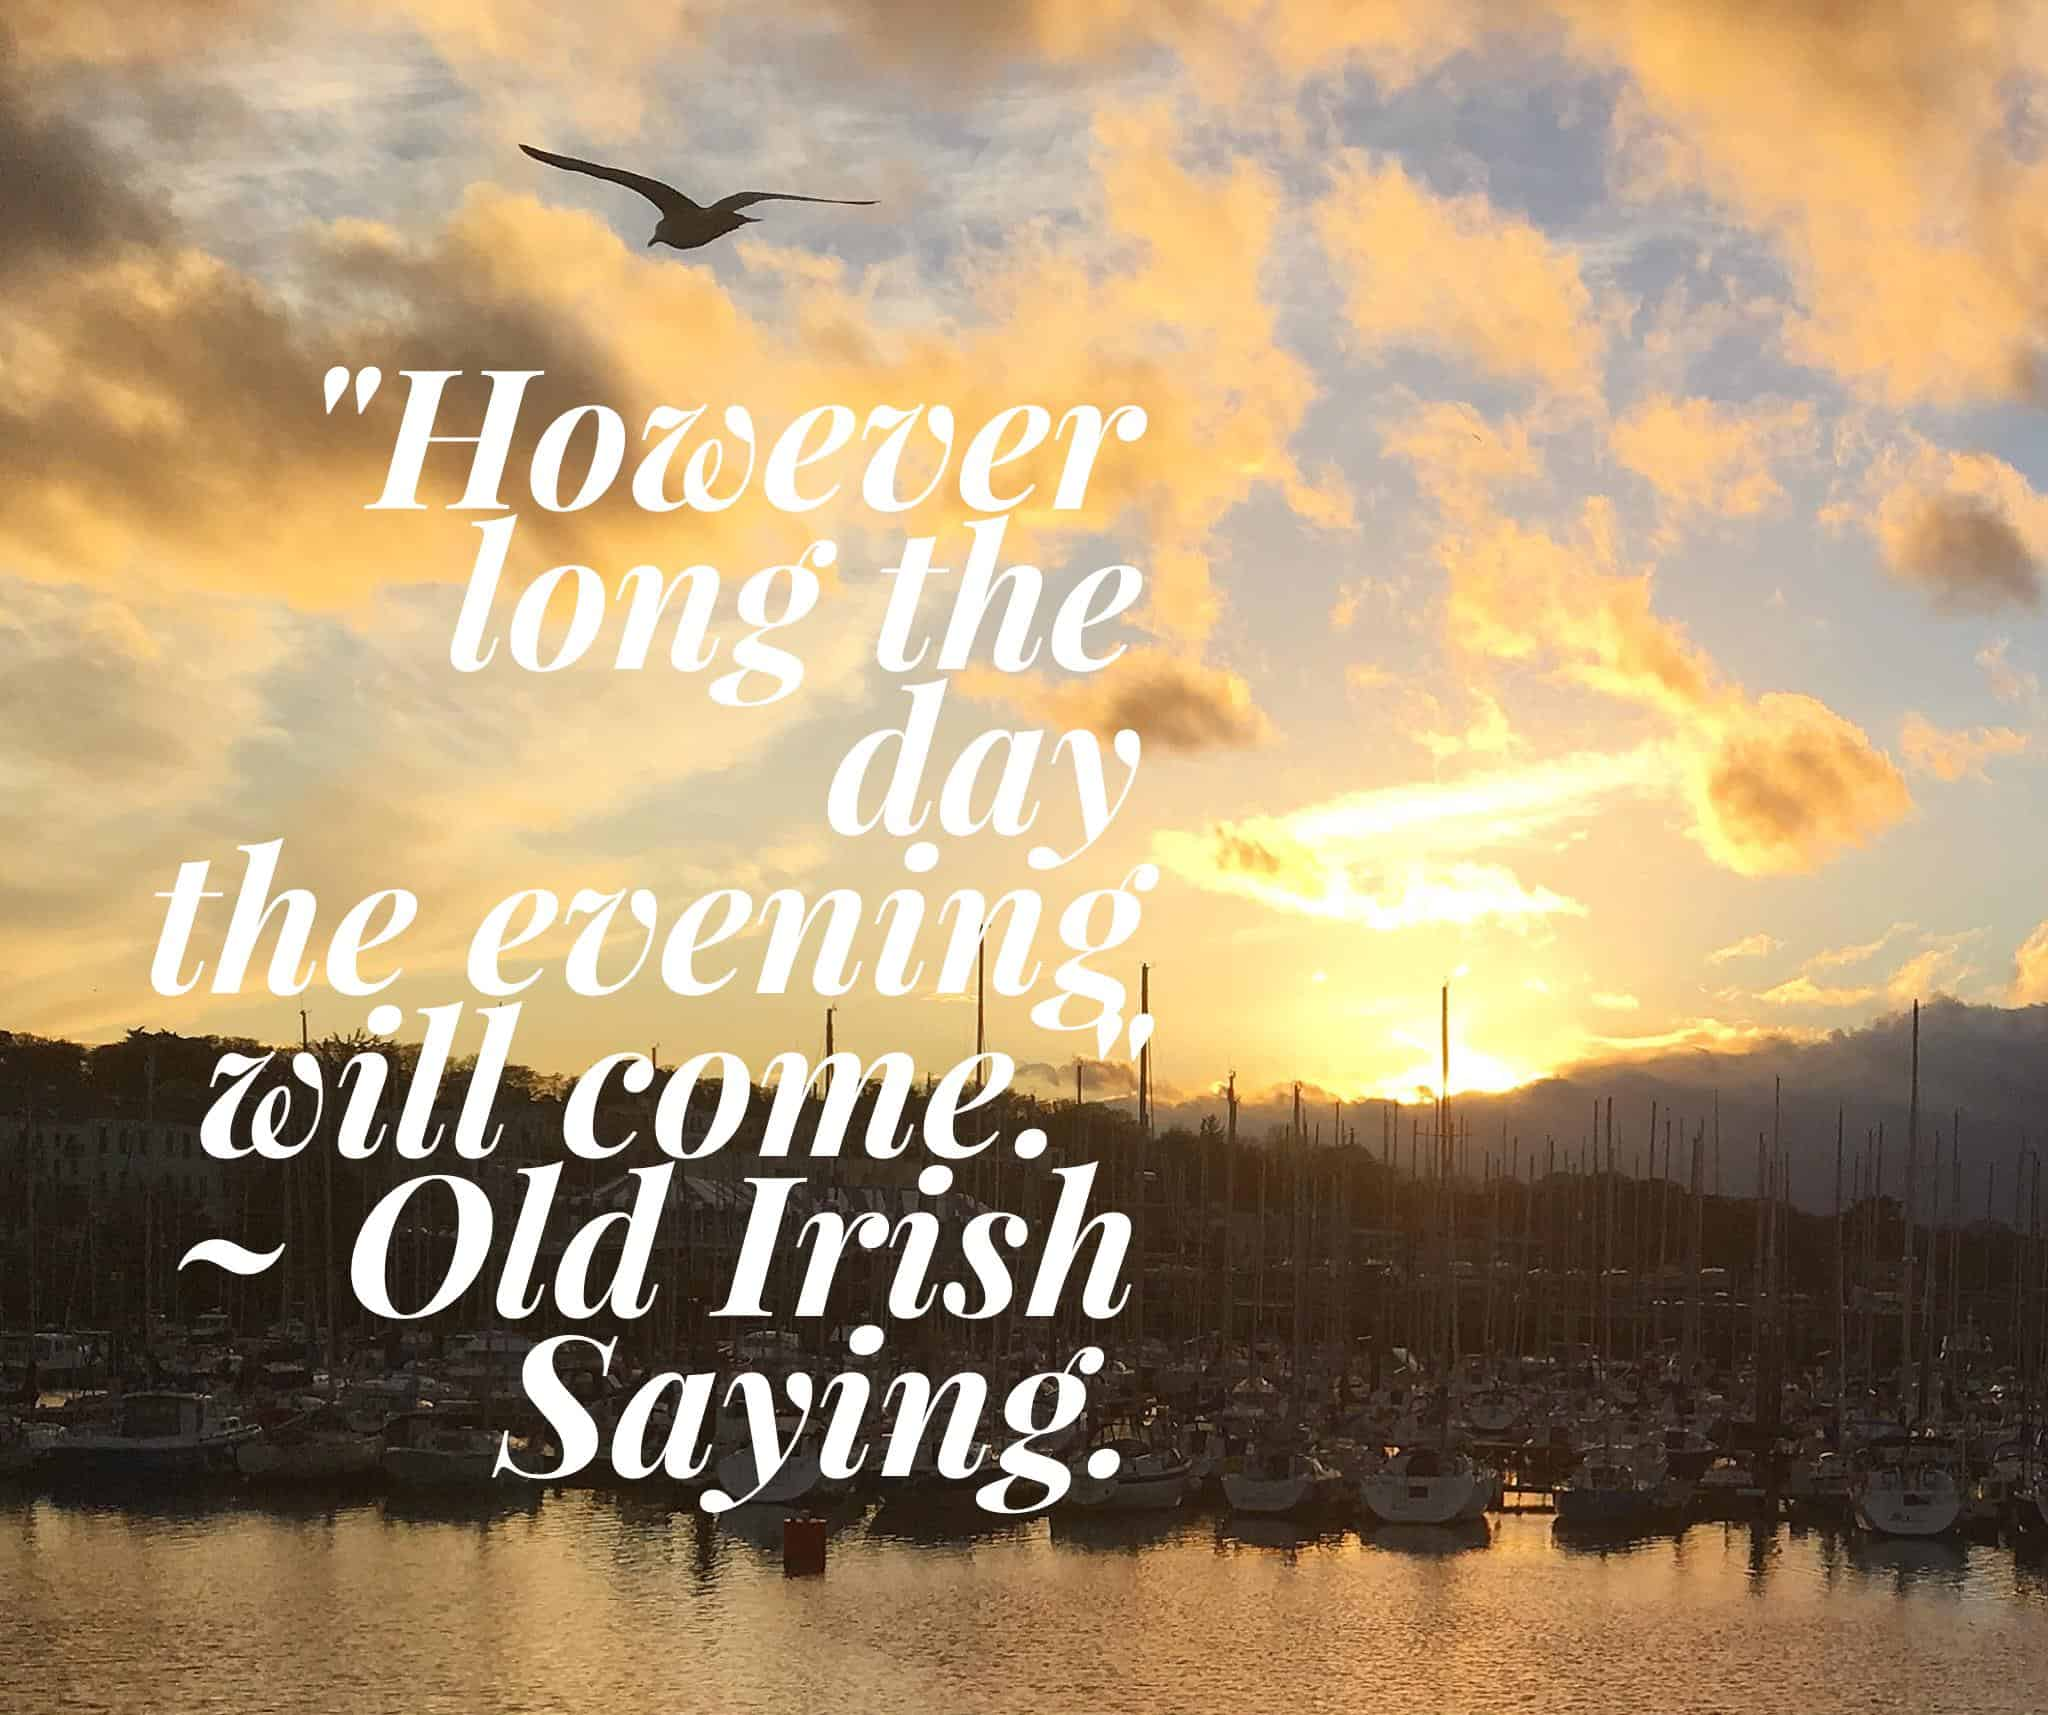 The setting sun over the boats at a marina illustrating the old Irish saying however long the day the evening will come